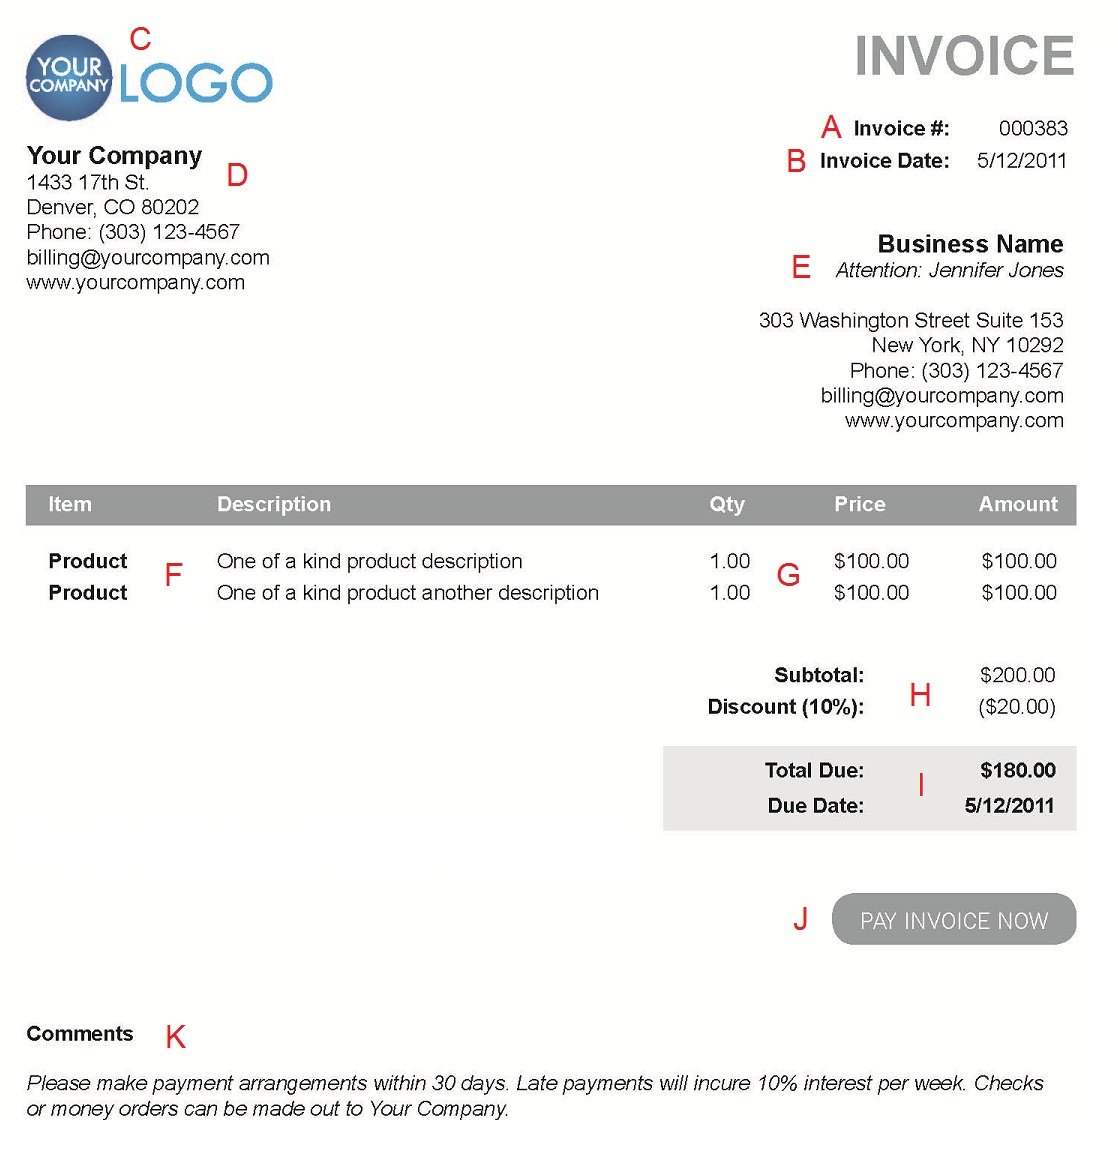 Pigbrotherus  Remarkable The  Different Sections Of An Electronic Payment Invoice With Fascinating A  With Amusing Proforma Invoice For Customs Also Invoice Australia In Addition Payment Invoice Format And Triplicate Invoice Books As Well As Dealer Invoice Price Canada Additionally Example Of An Invoice Template From Paysimplecom With Pigbrotherus  Fascinating The  Different Sections Of An Electronic Payment Invoice With Amusing A  And Remarkable Proforma Invoice For Customs Also Invoice Australia In Addition Payment Invoice Format From Paysimplecom